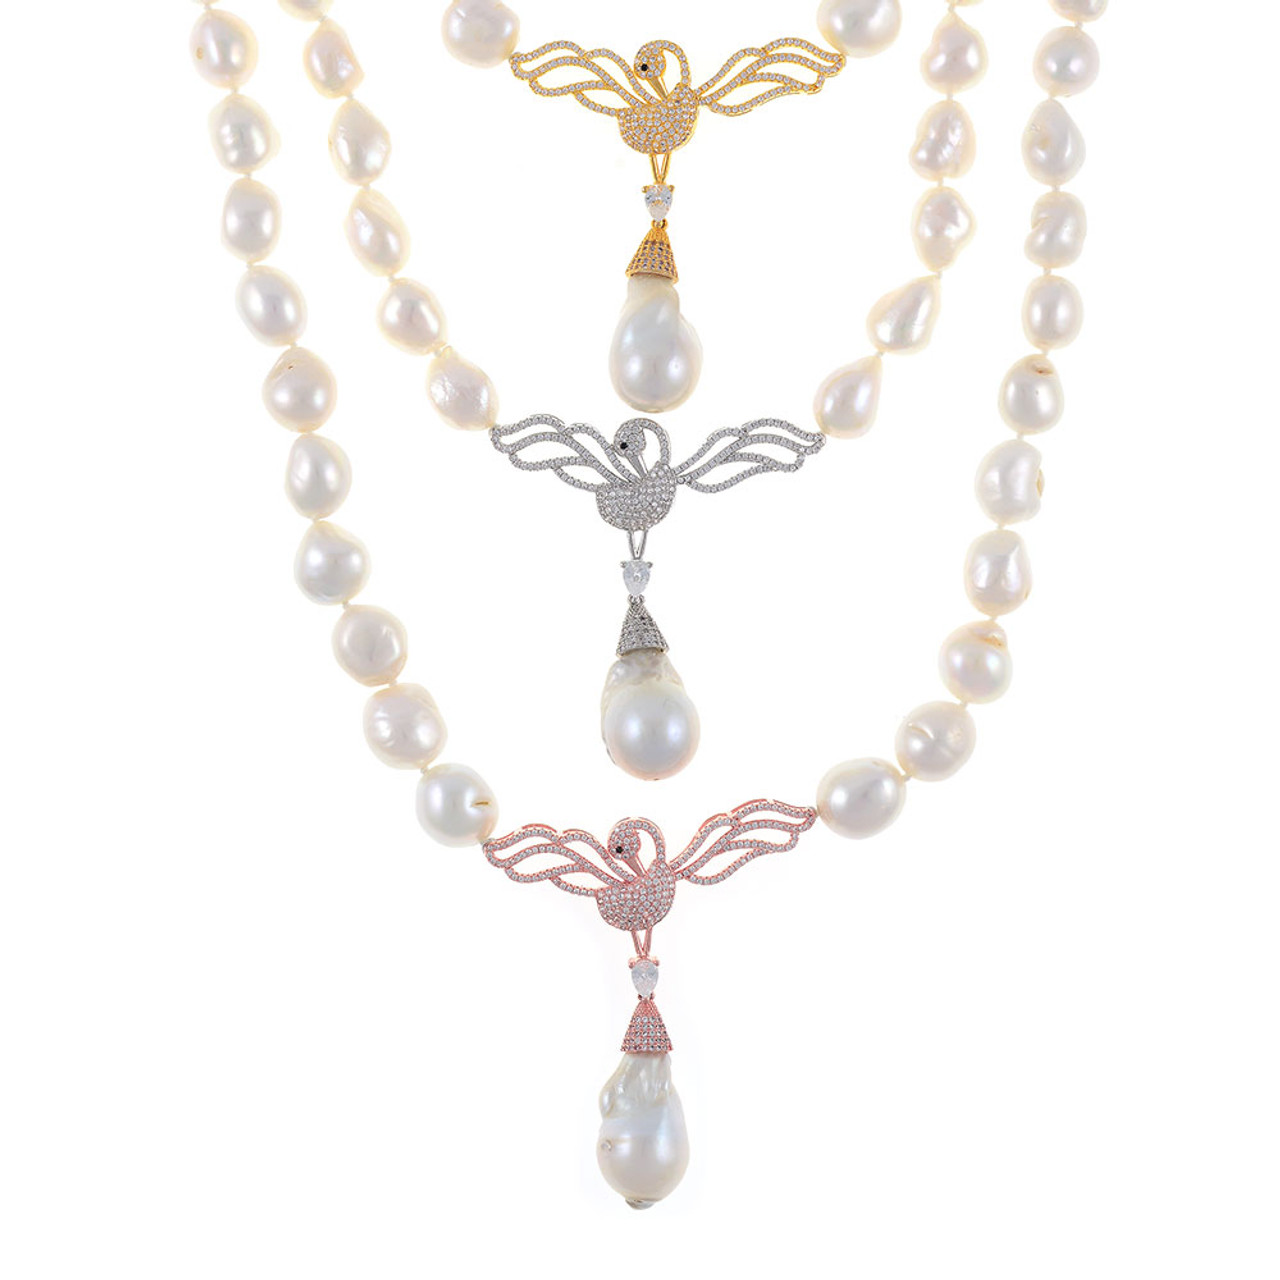 f132f12b538f Pearl Necklace featuring CZ Swan Pendant and Biawa Pearl